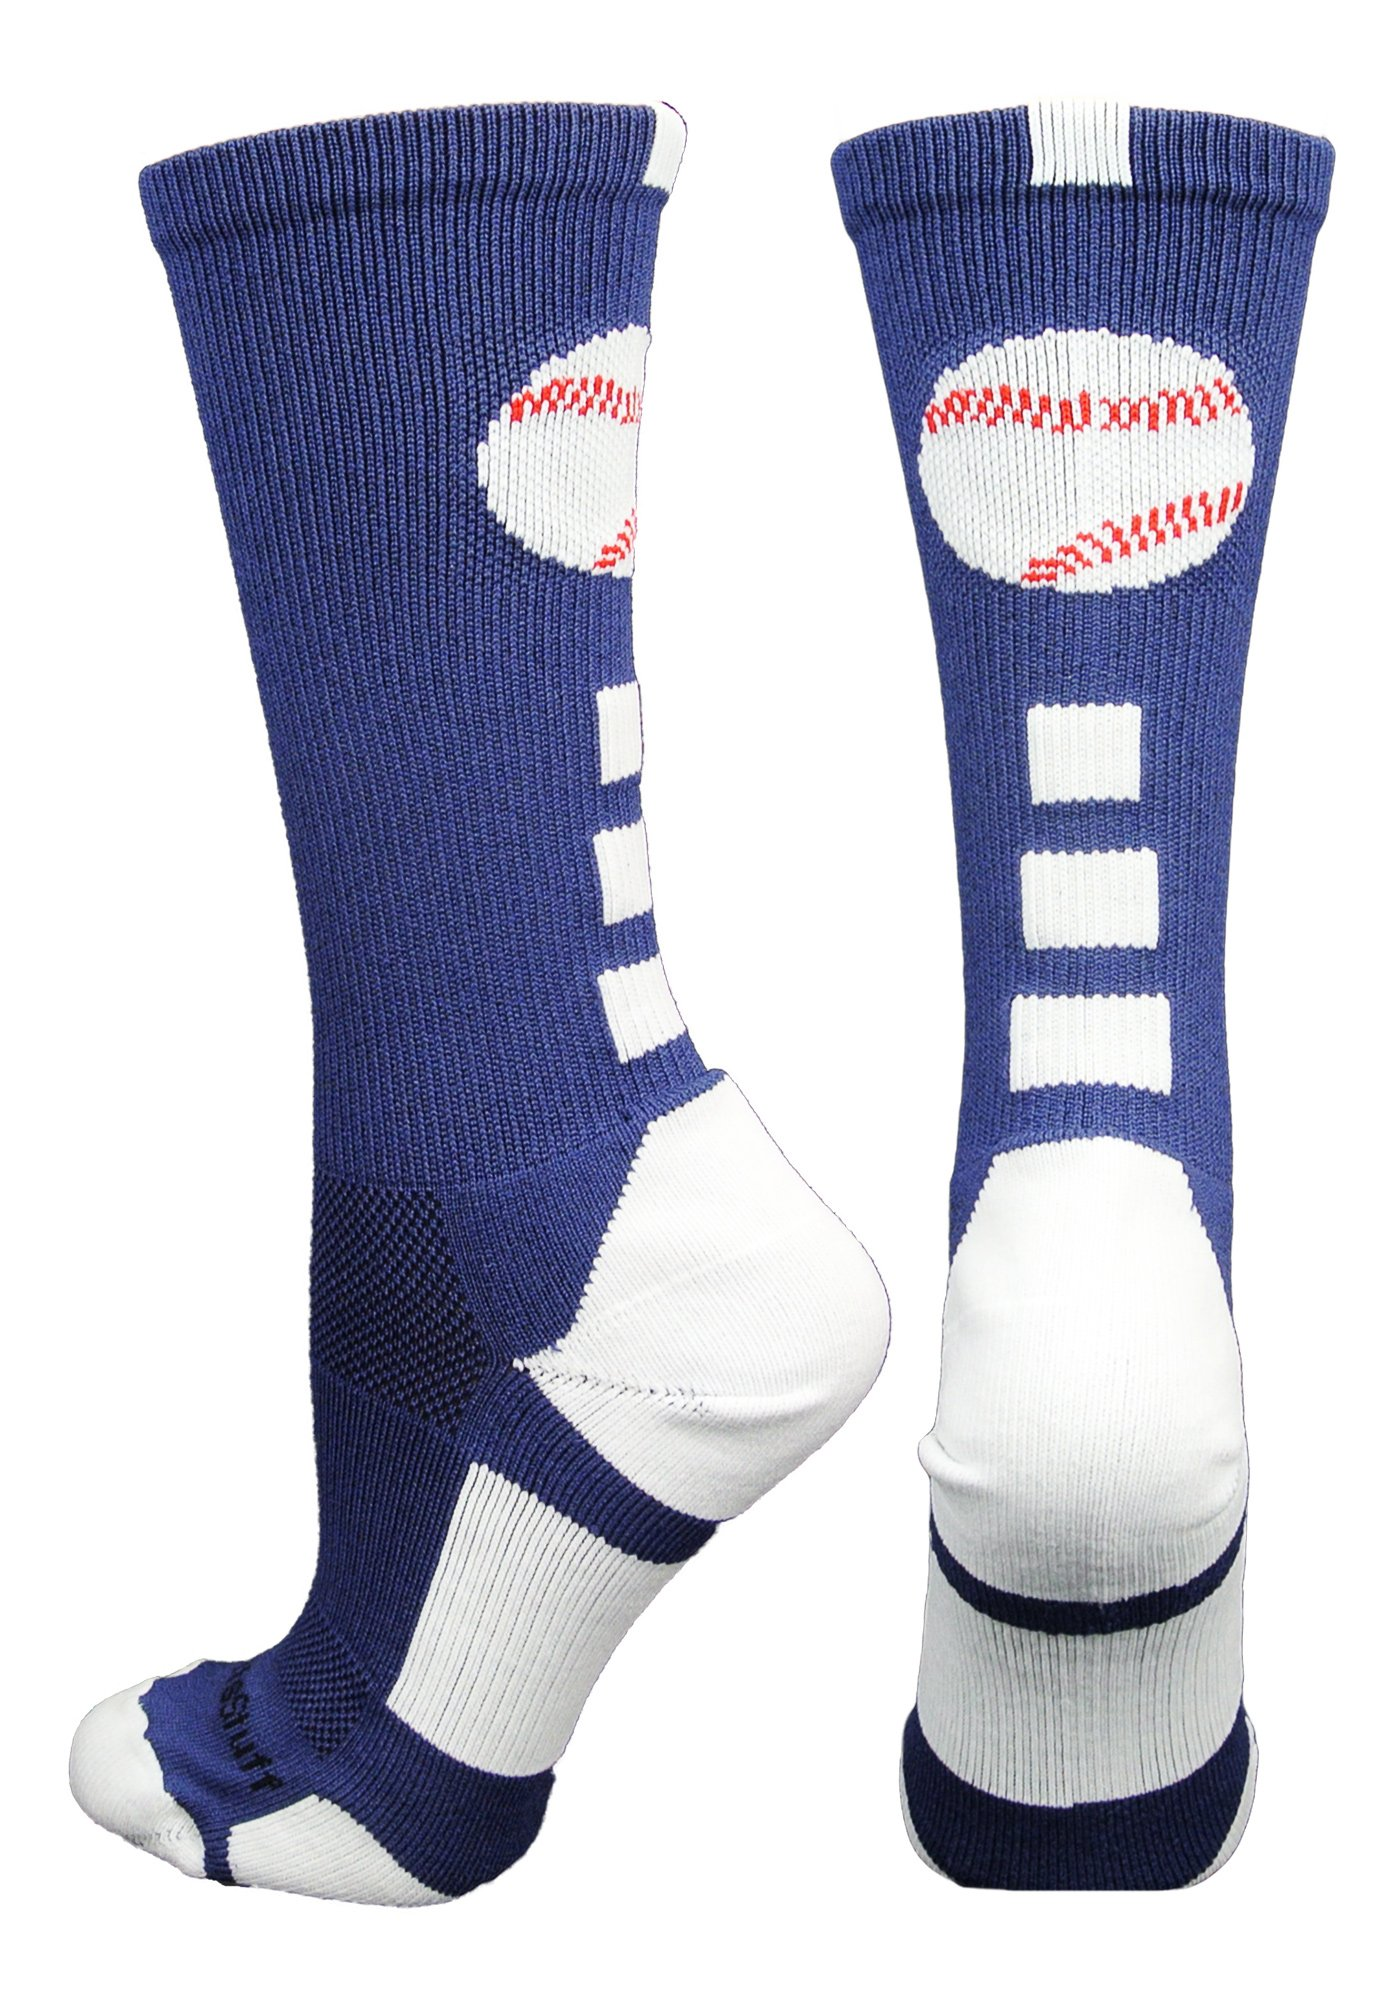 MadSportsStuff Baseball Logo Crew Socks (Navy/White, Small) by MadSportsStuff